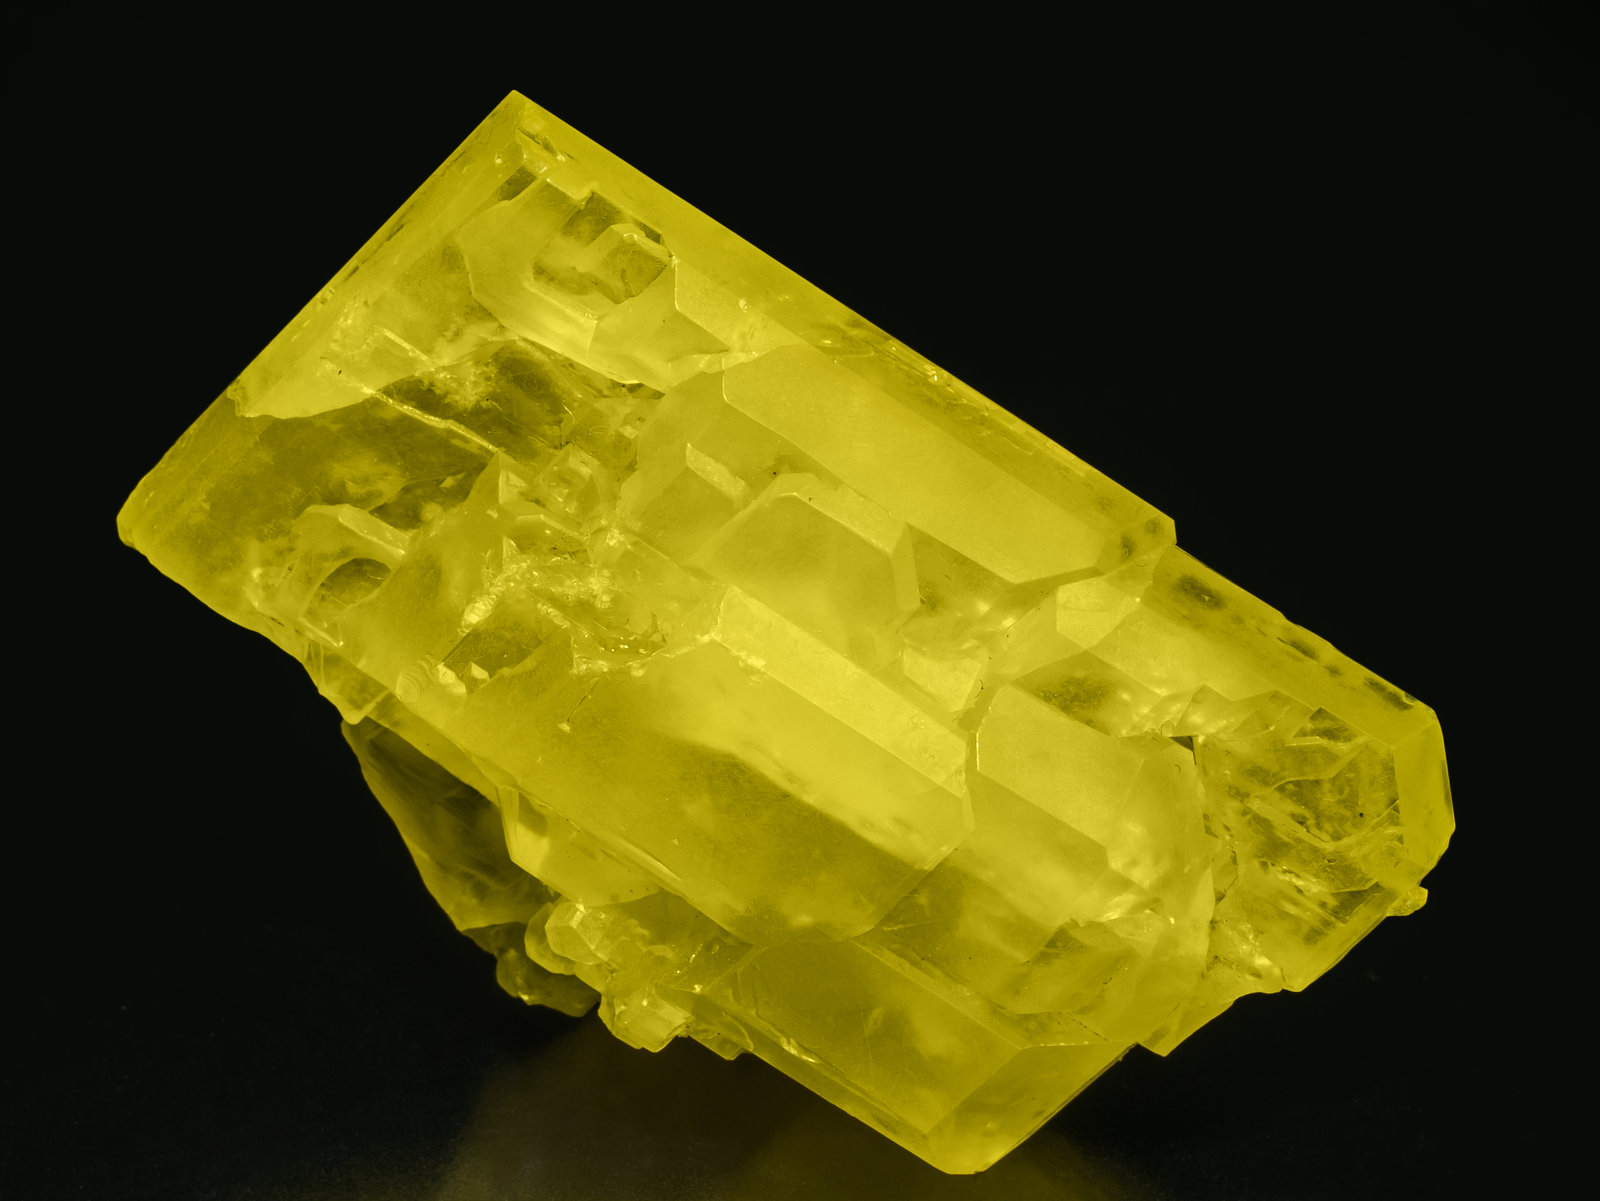 specimens/s_imagesAJ0/Sulfur-AT30AJ0f.jpg